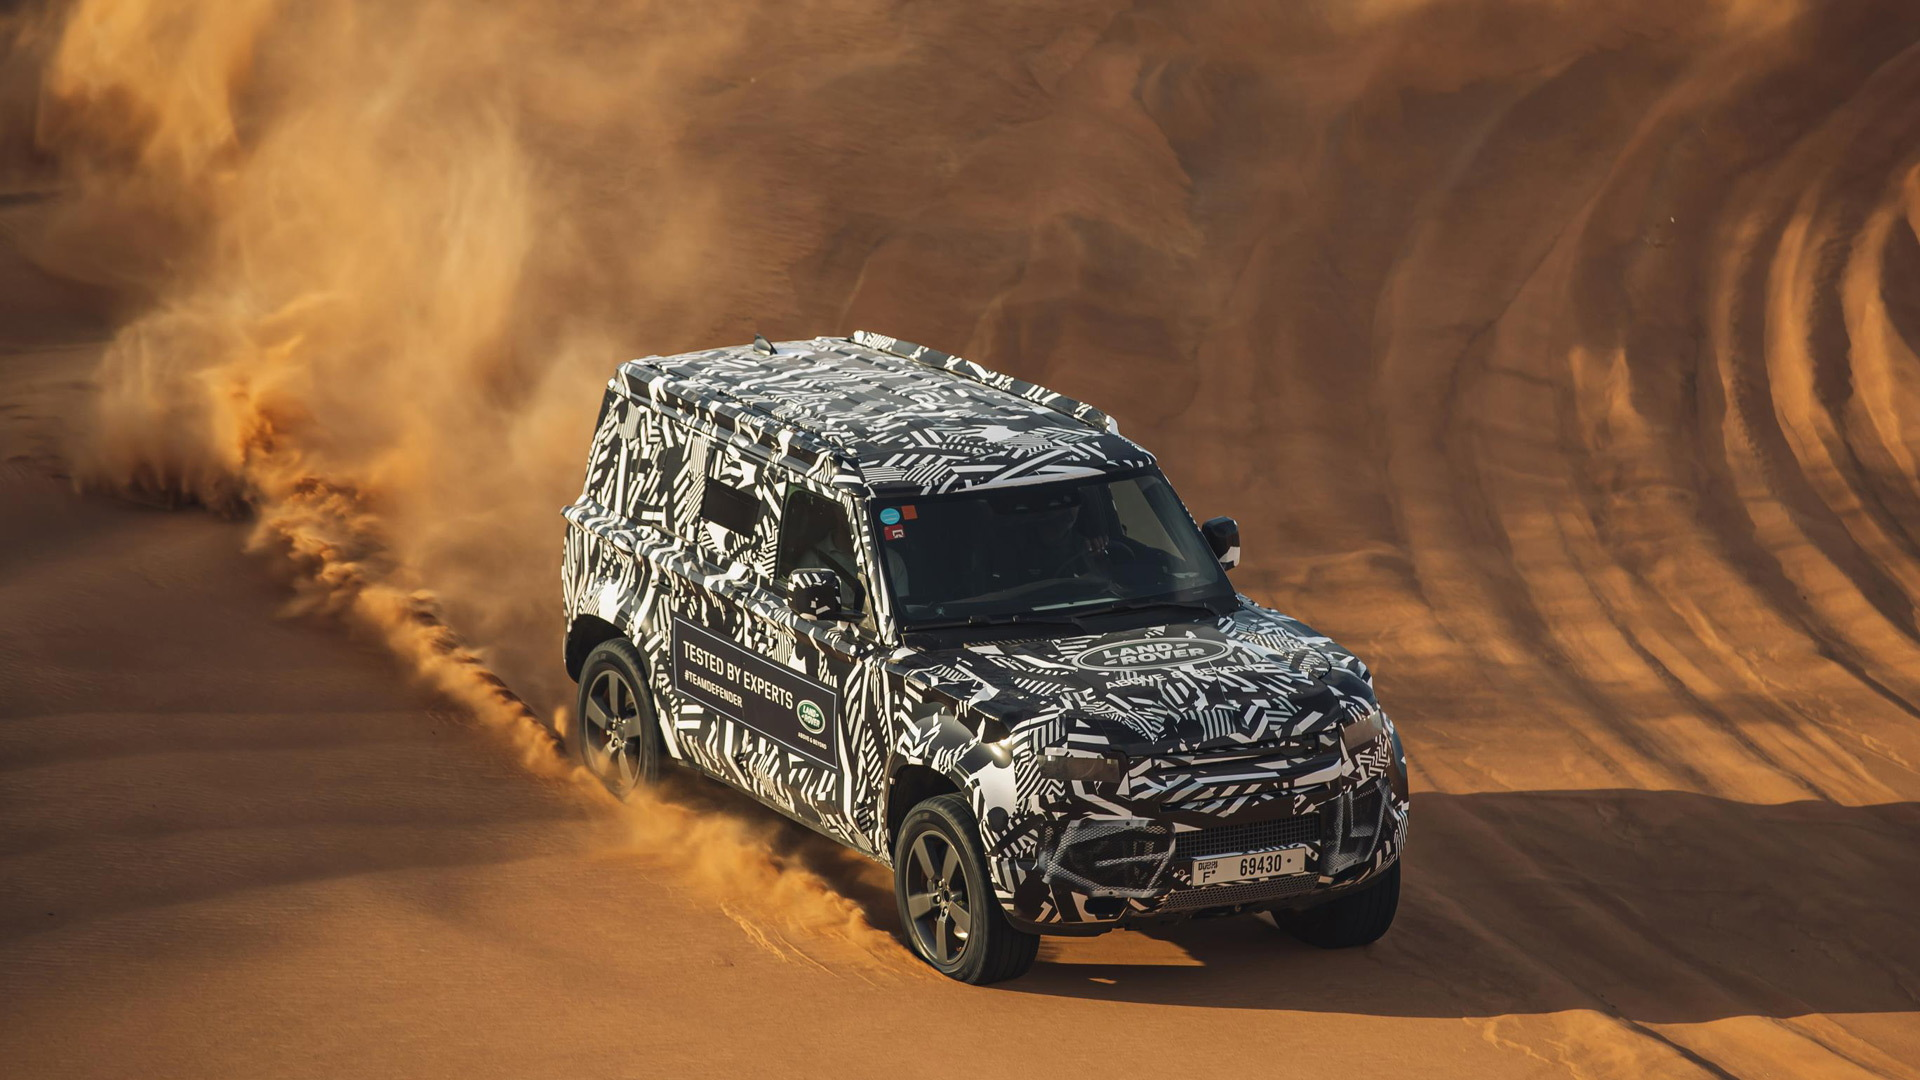 2020 Land Rover Defender tested with International Federation of Red Cross